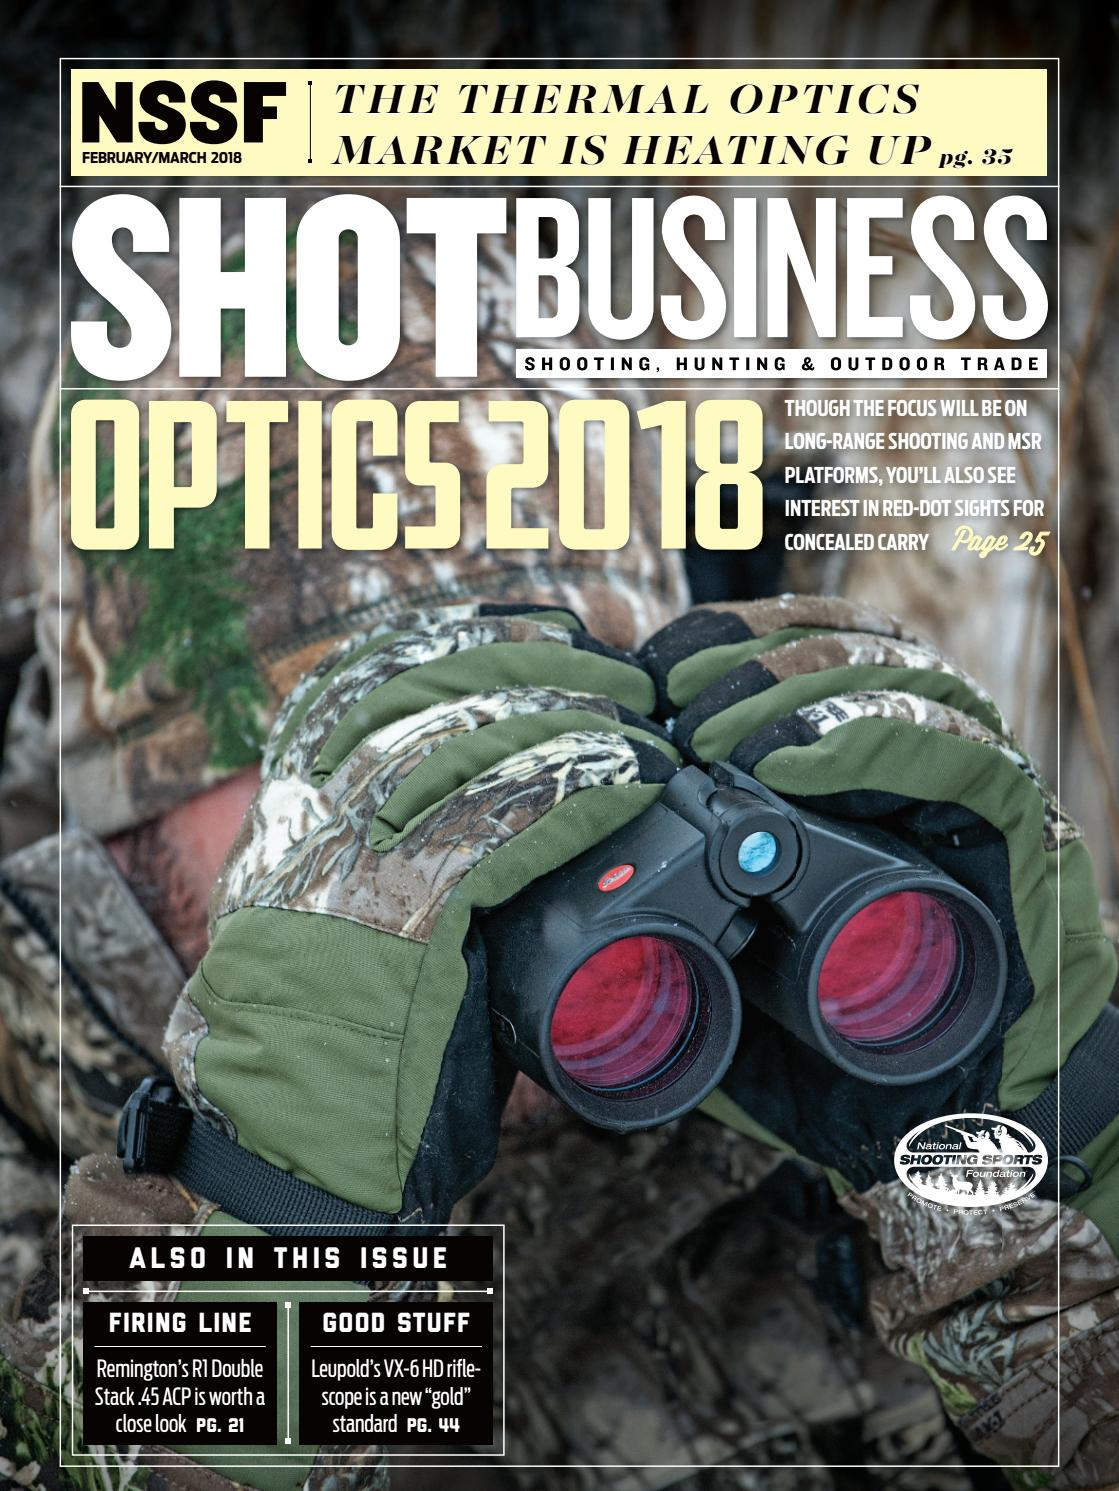 SHOT Business Feb/March 2018 by SHOT Business - issuu